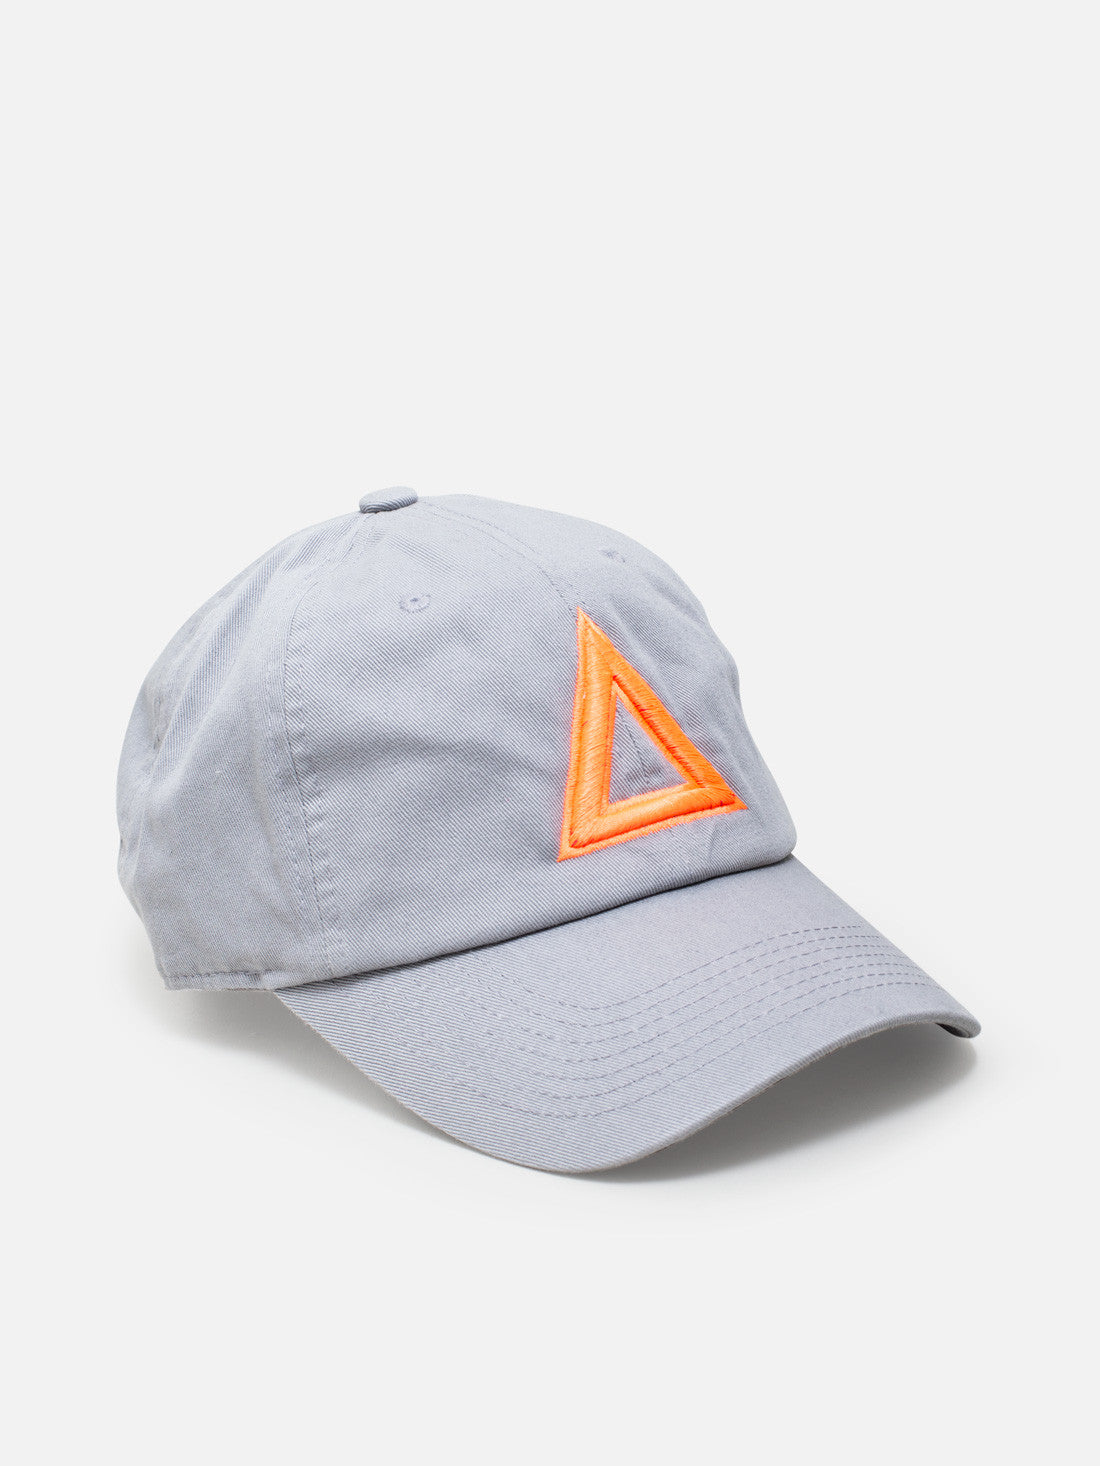 Dad hat grey - orange tri